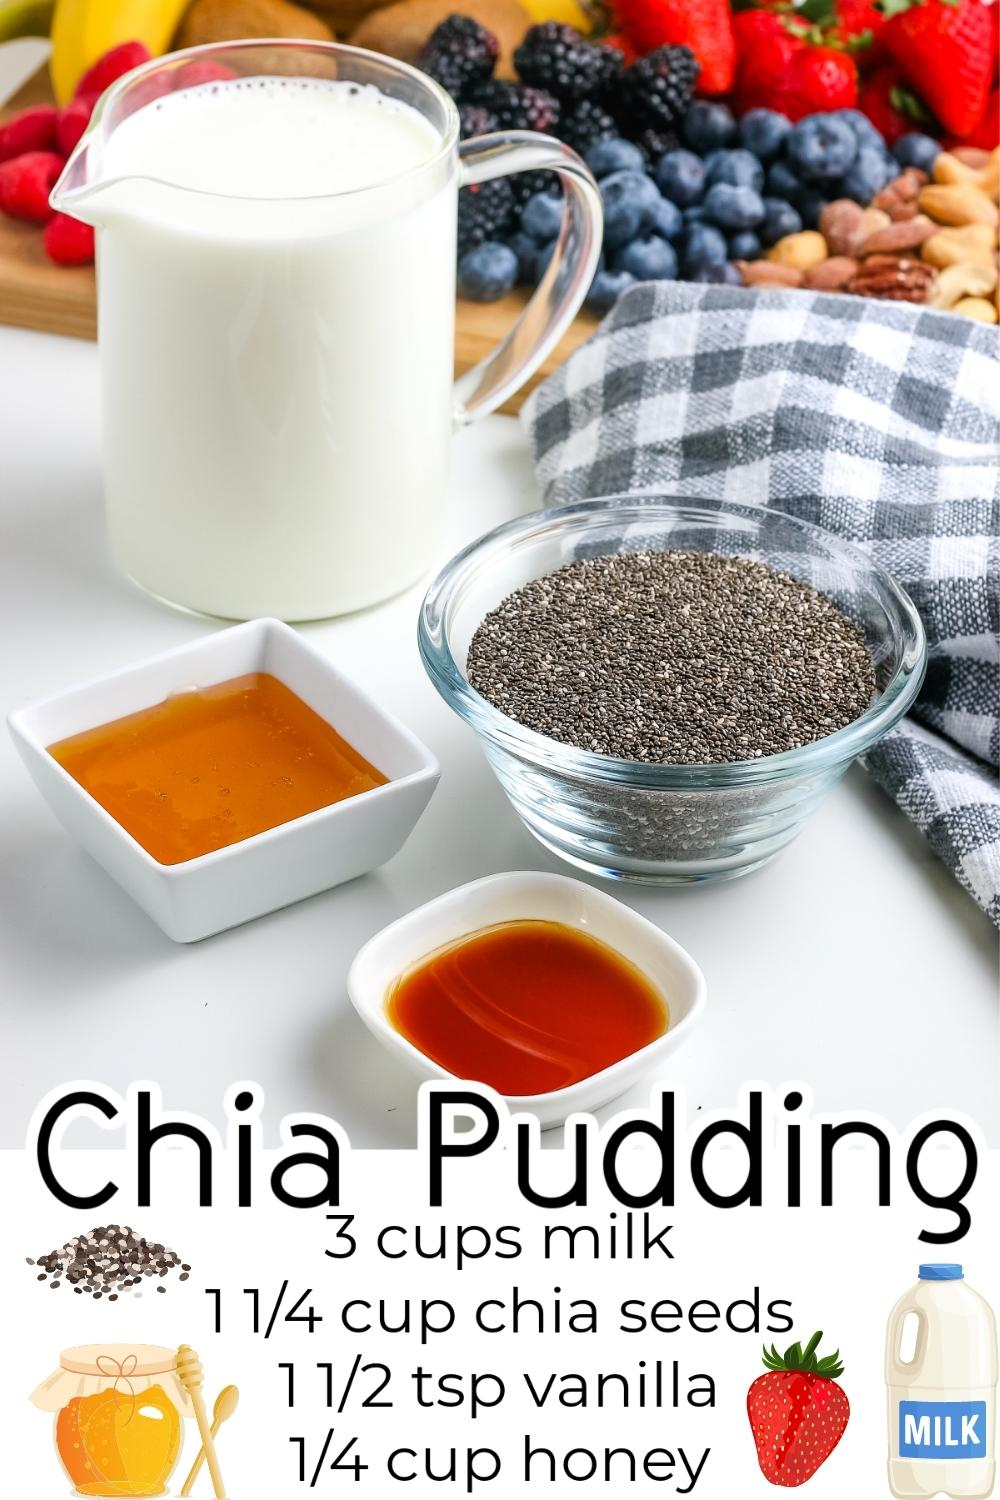 All of the ingredients needed to make Chia Pudding.